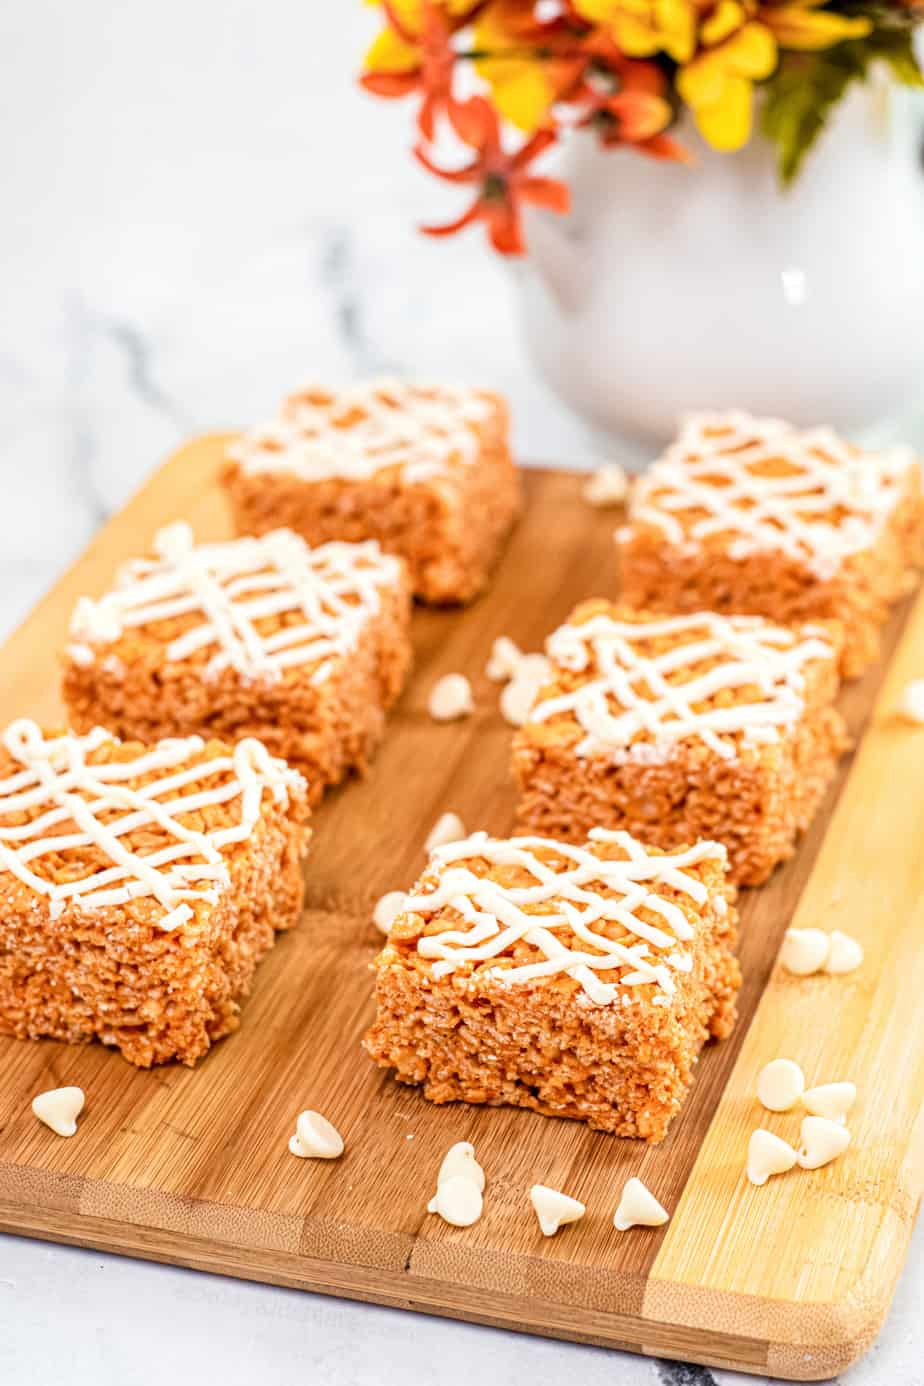 Pumpkin rice krispie treats sliced into squares on a cutting board with a white chocolate drizzle on top and white chocolate chips scattered on the cutting board.